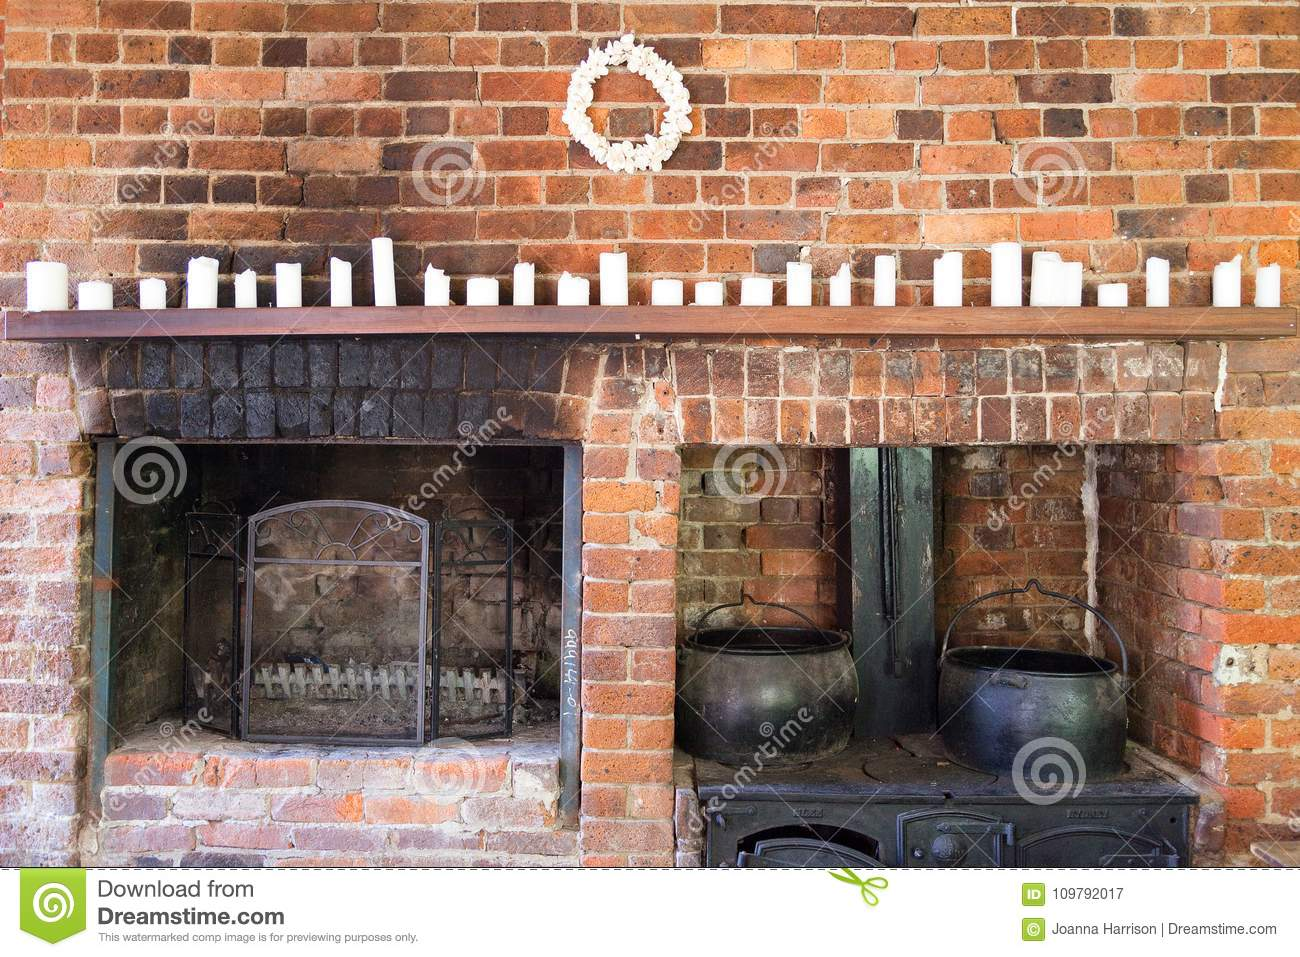 Old Fashioned Vintage Wood Burning Kitchen Stove In The Home With Black  Traditional Cauldron And Rustic Brick Fireplace With Candles On A Wooden  Mantle, ...